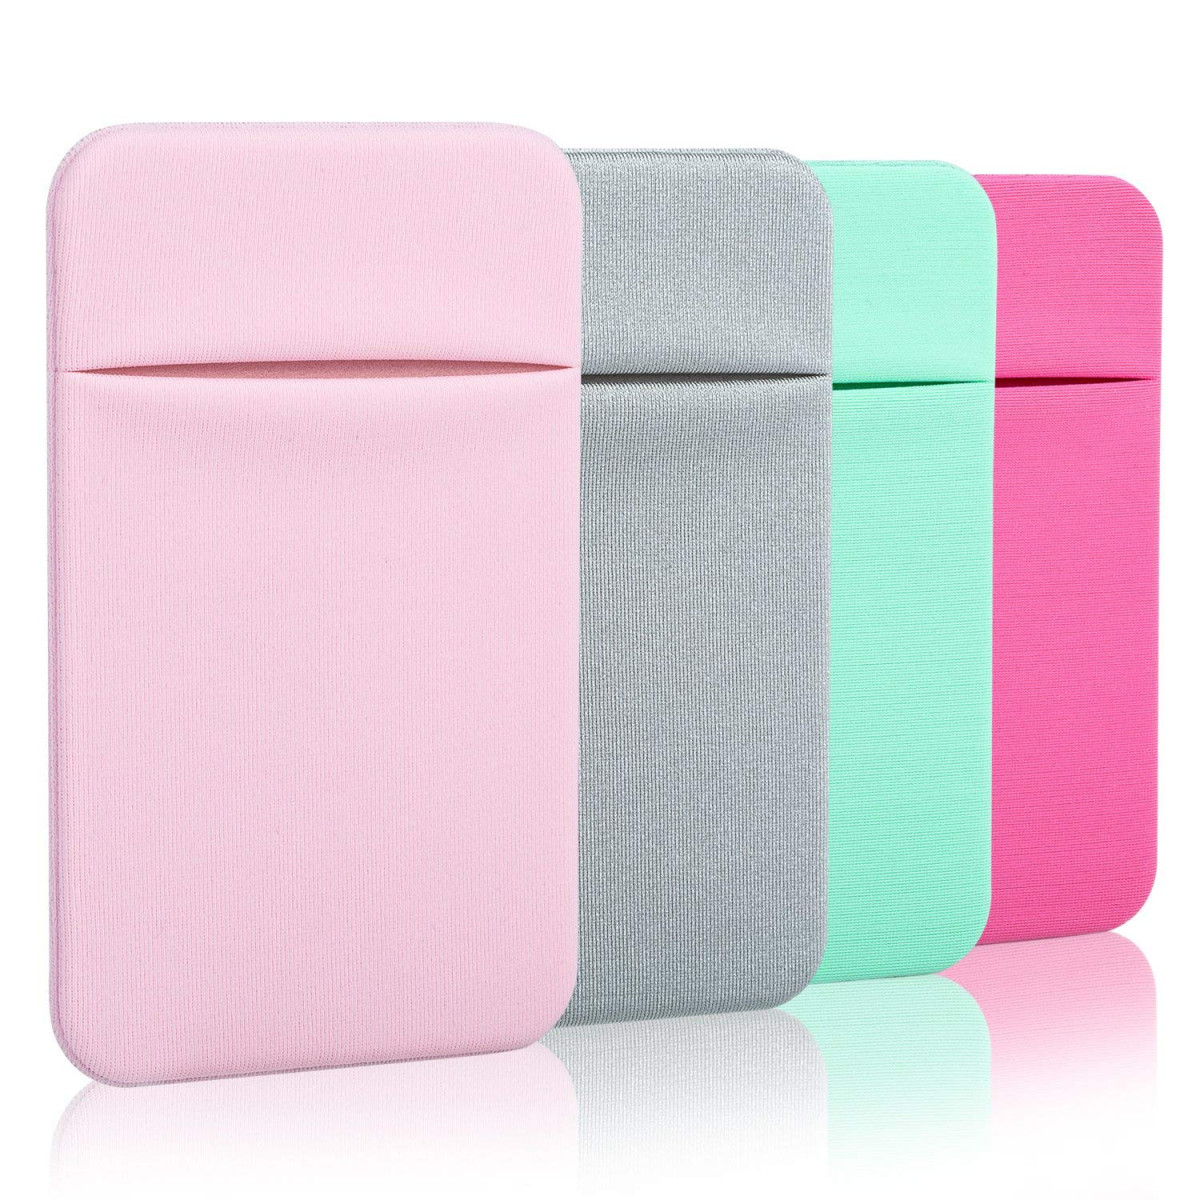 promo code df887 e1824 Costyle Slim Credit Card Holder for Back of Phone Cell Phone Stick On Wallet